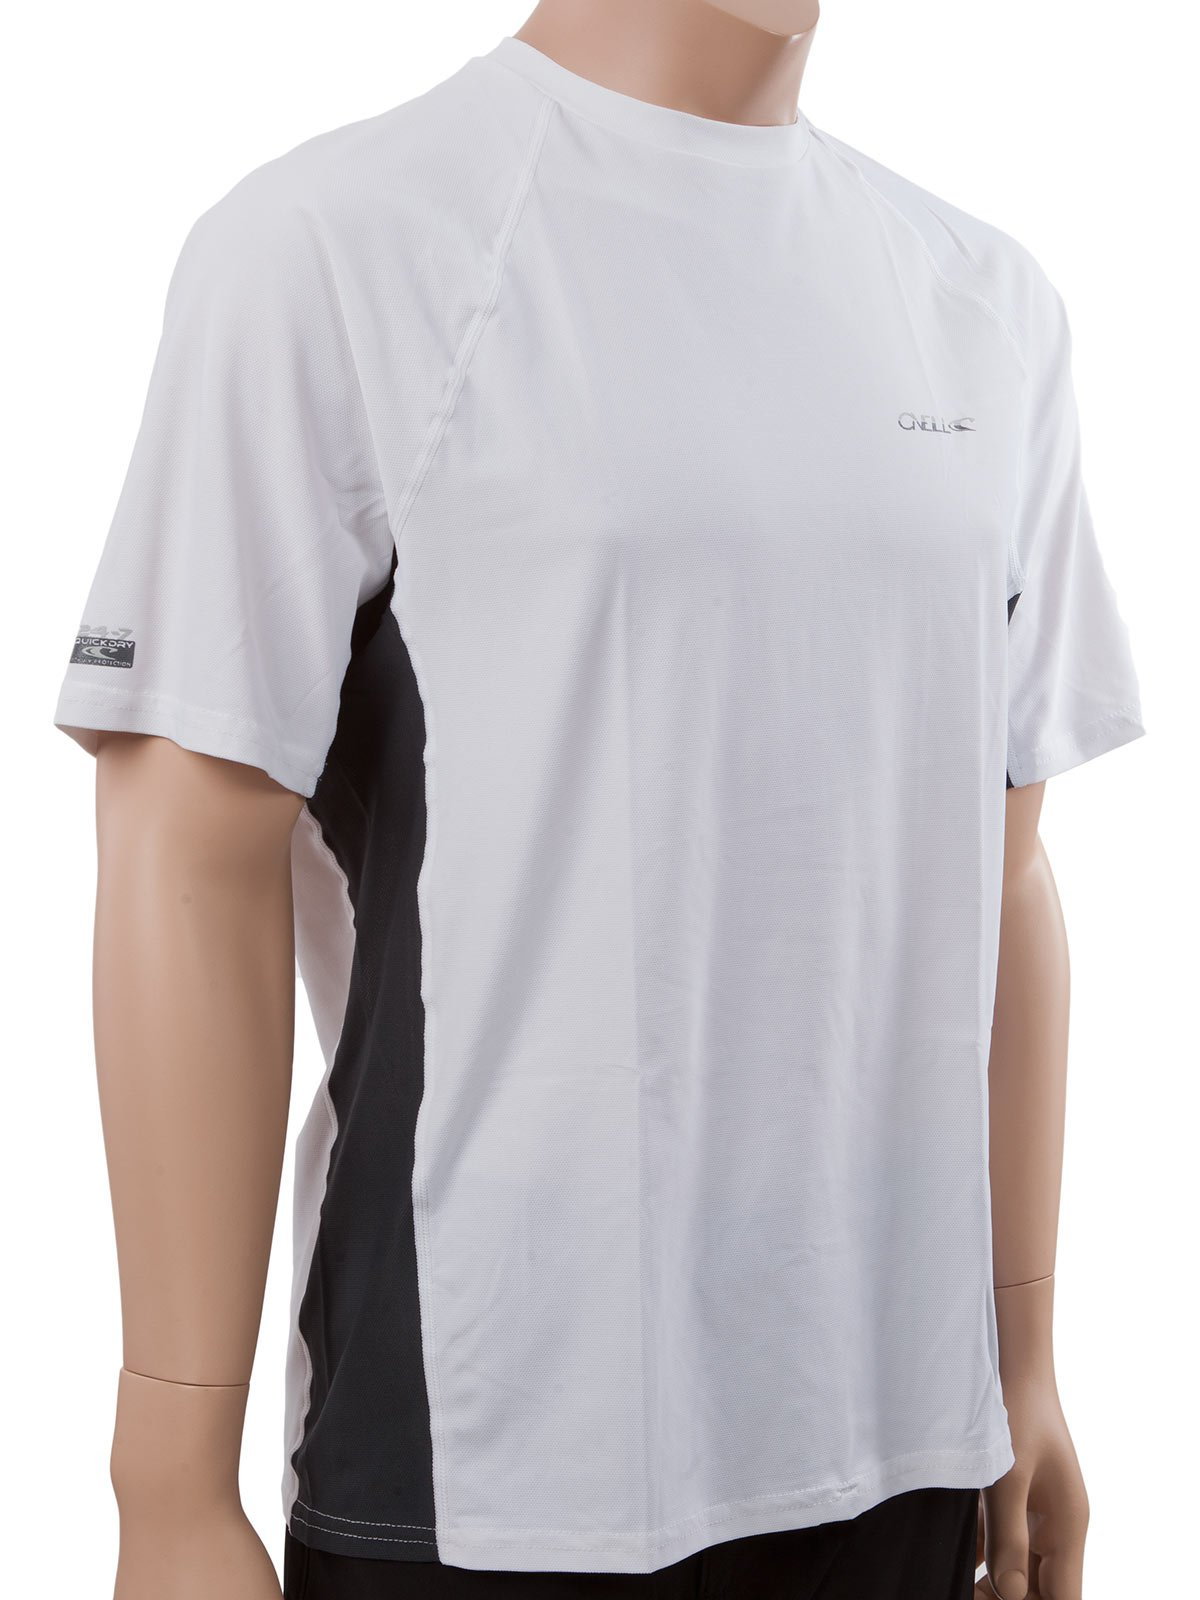 O'Neill Men's 24/7 Sun tee King 5X White/Graphite (4452) by O'Neill